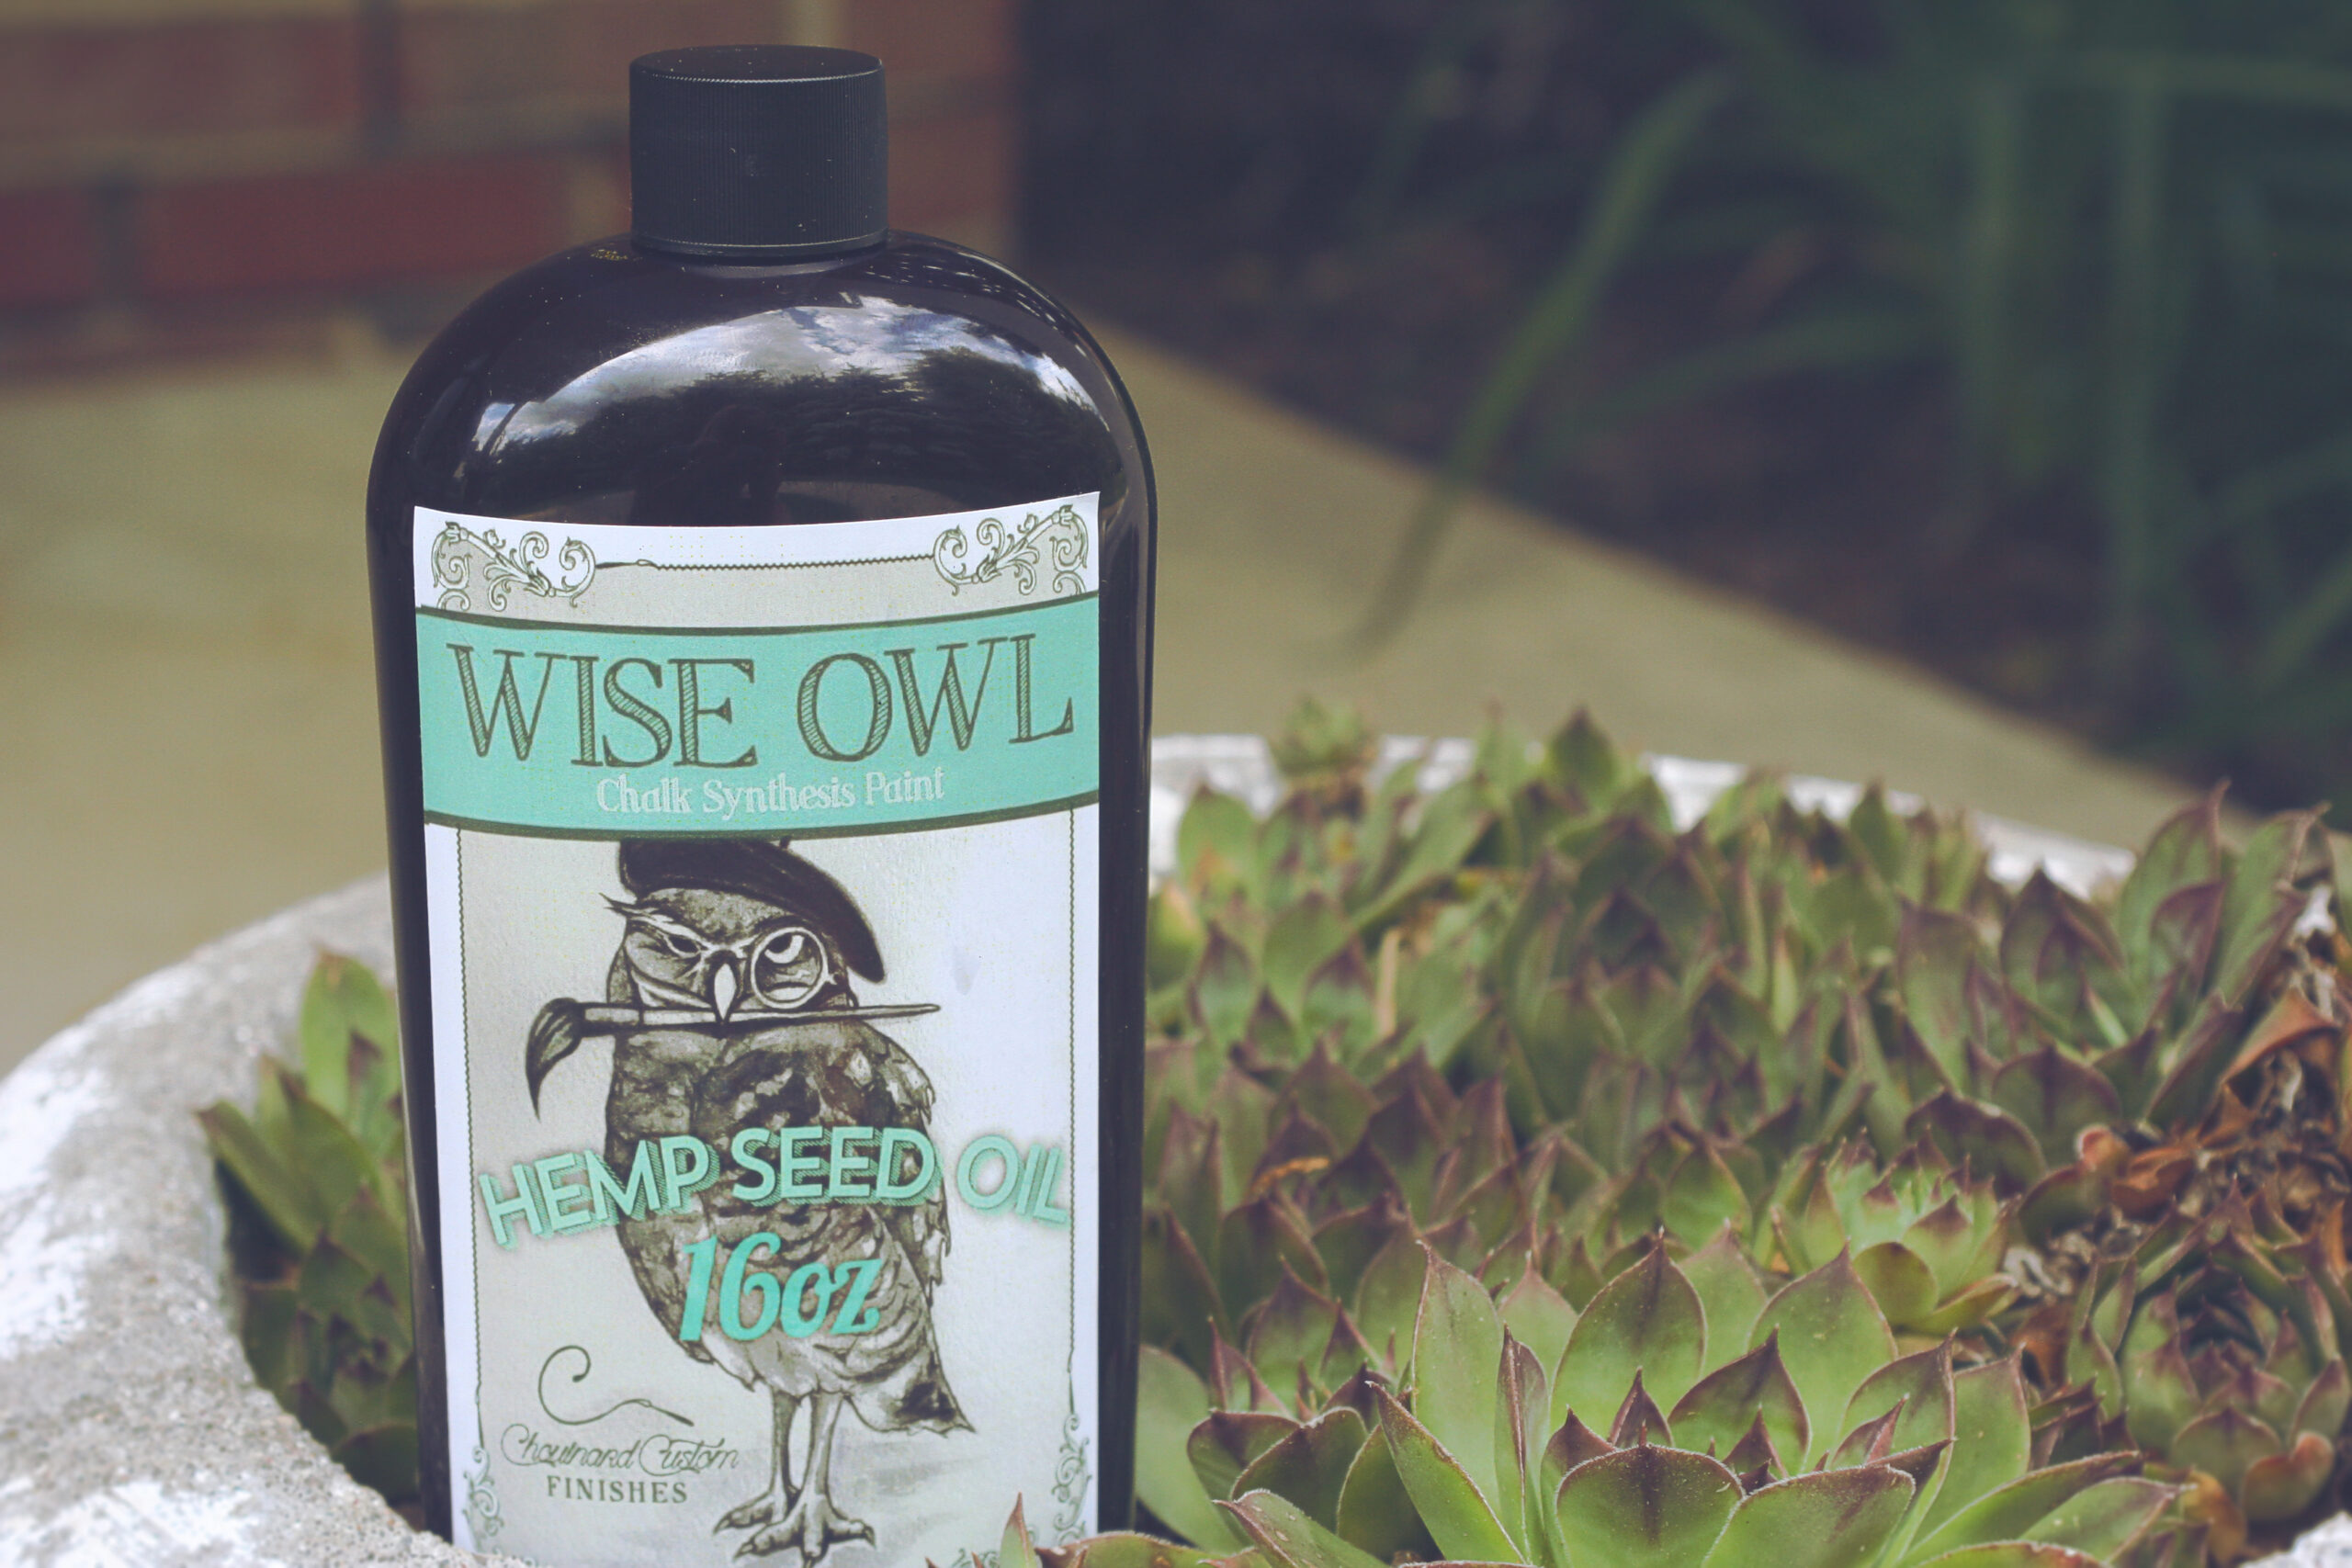 Wise Owl hemp oil available at Zacs4you.com